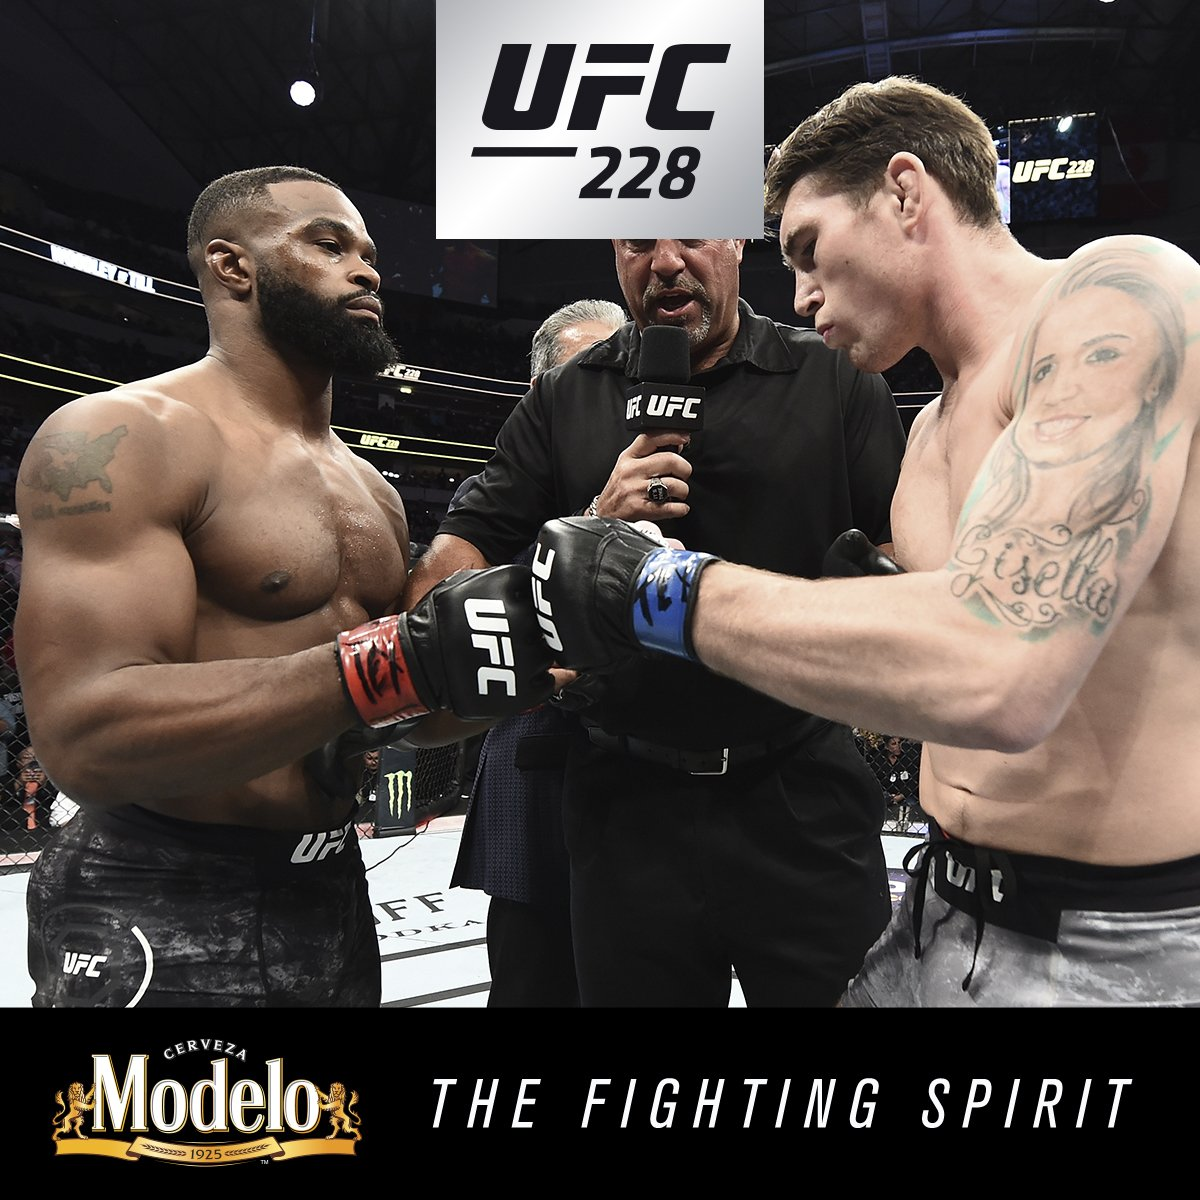 Adding another chapter to the legacy. @TWooodley showed his #FightingSpirit as he defended his belt AGAIN. @ModeloUSA #UFC228